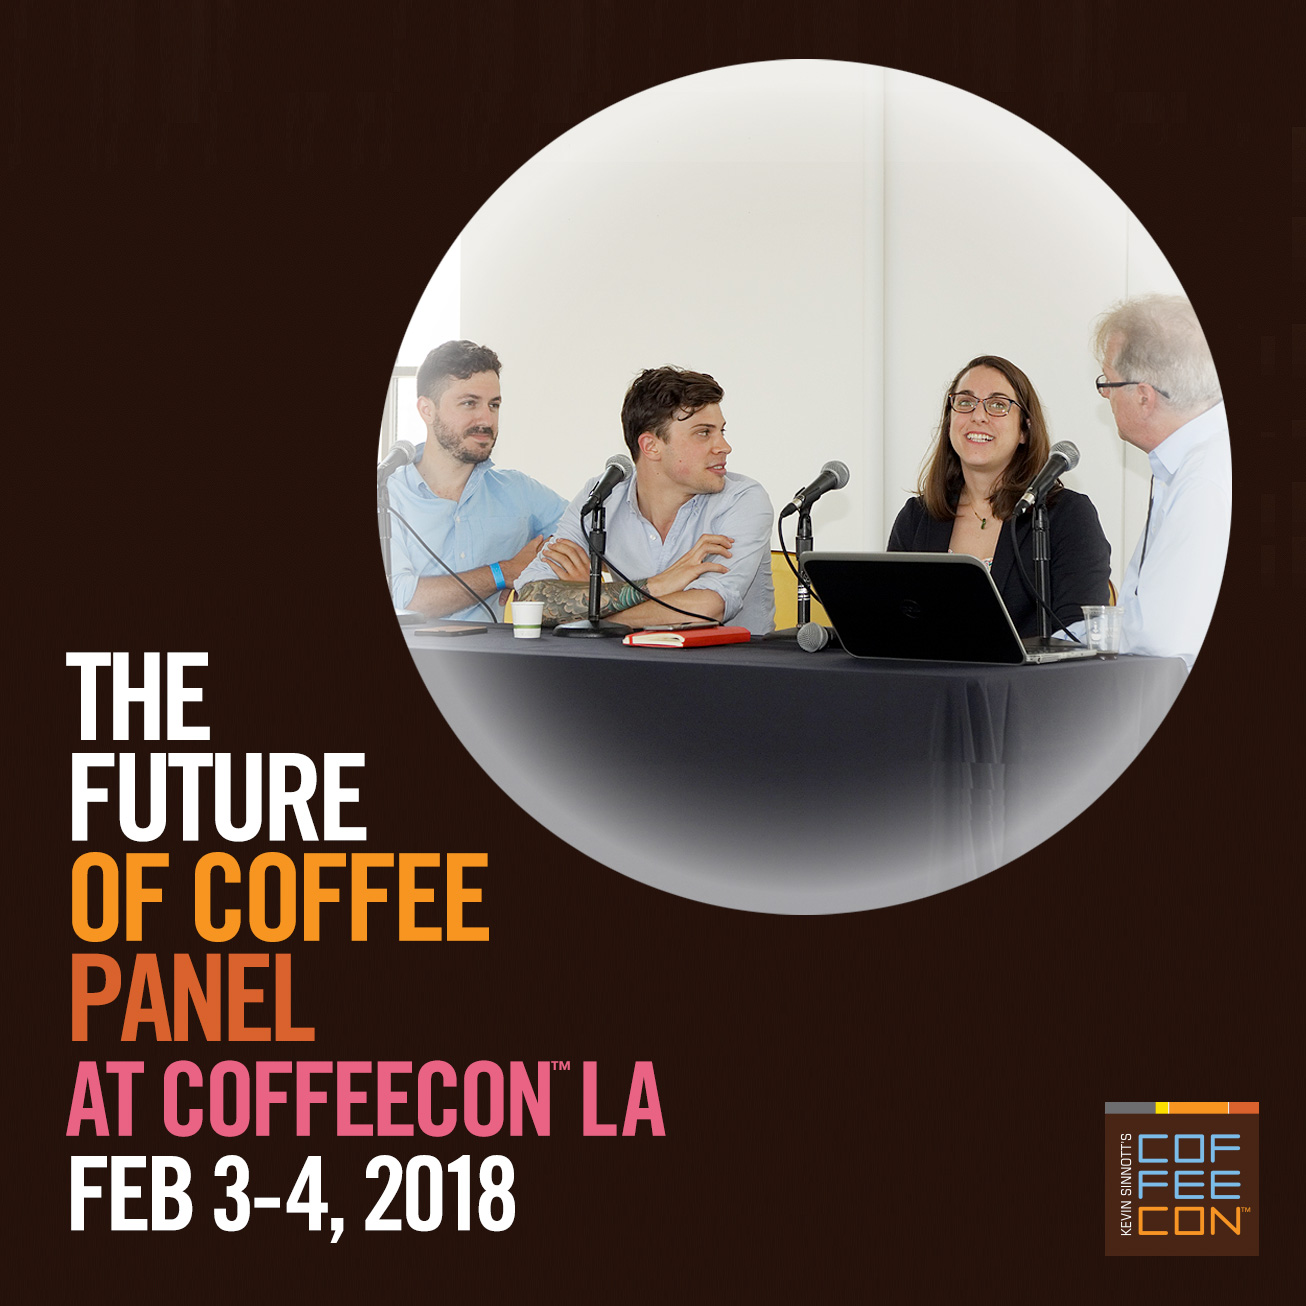 The Future of Coffee Panel at CoffeeConLA 2018